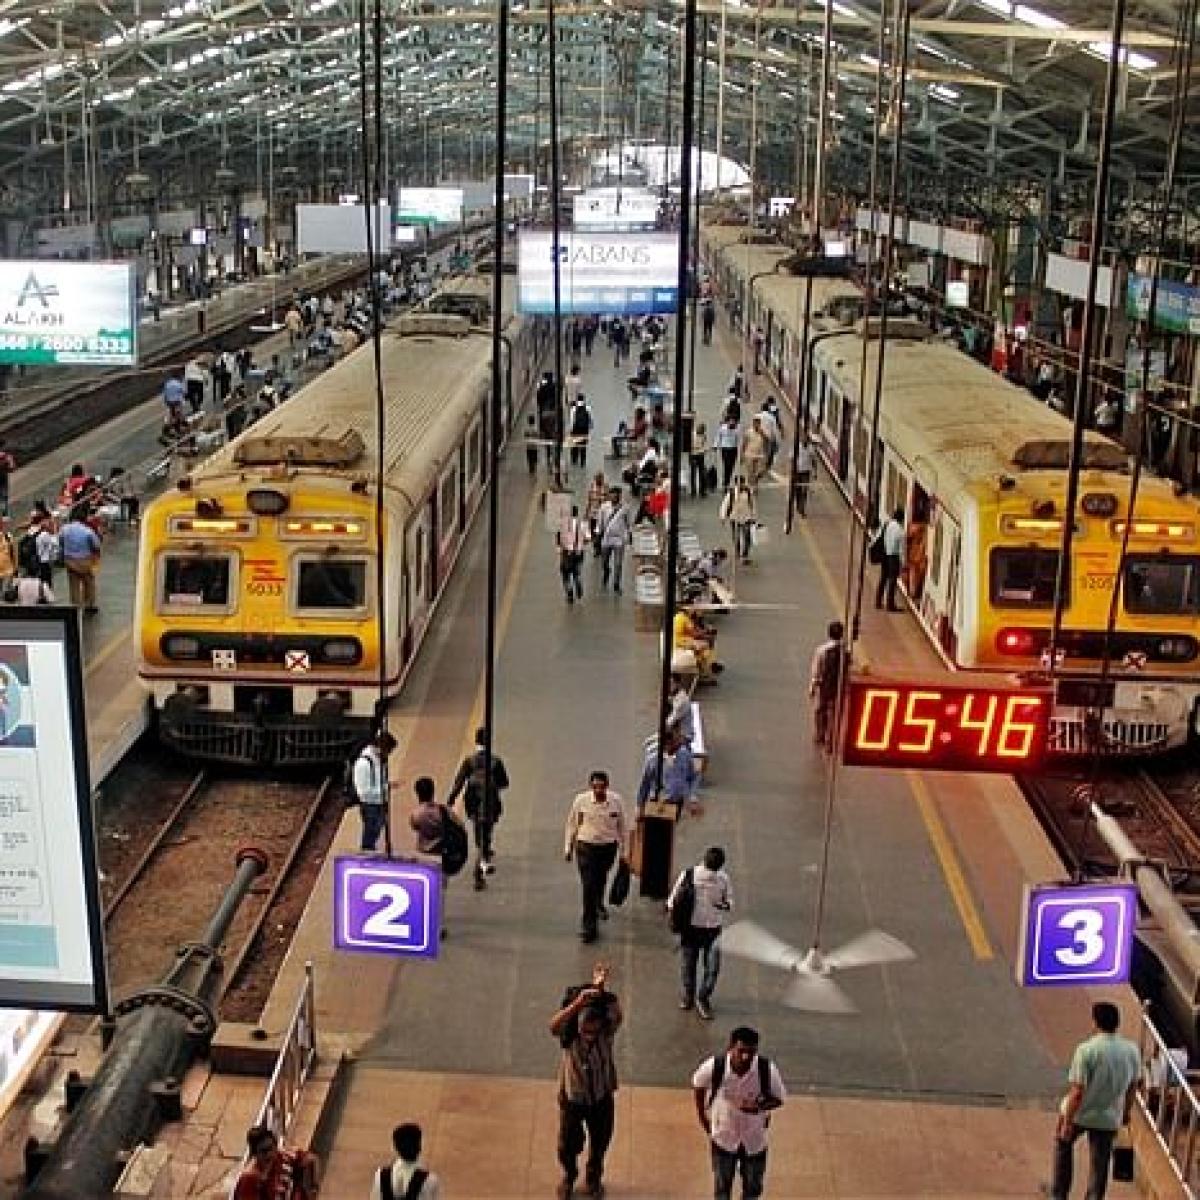 As Maharashtra govt announces strict curbs, here's who are allowed to board local trains in Mumbai